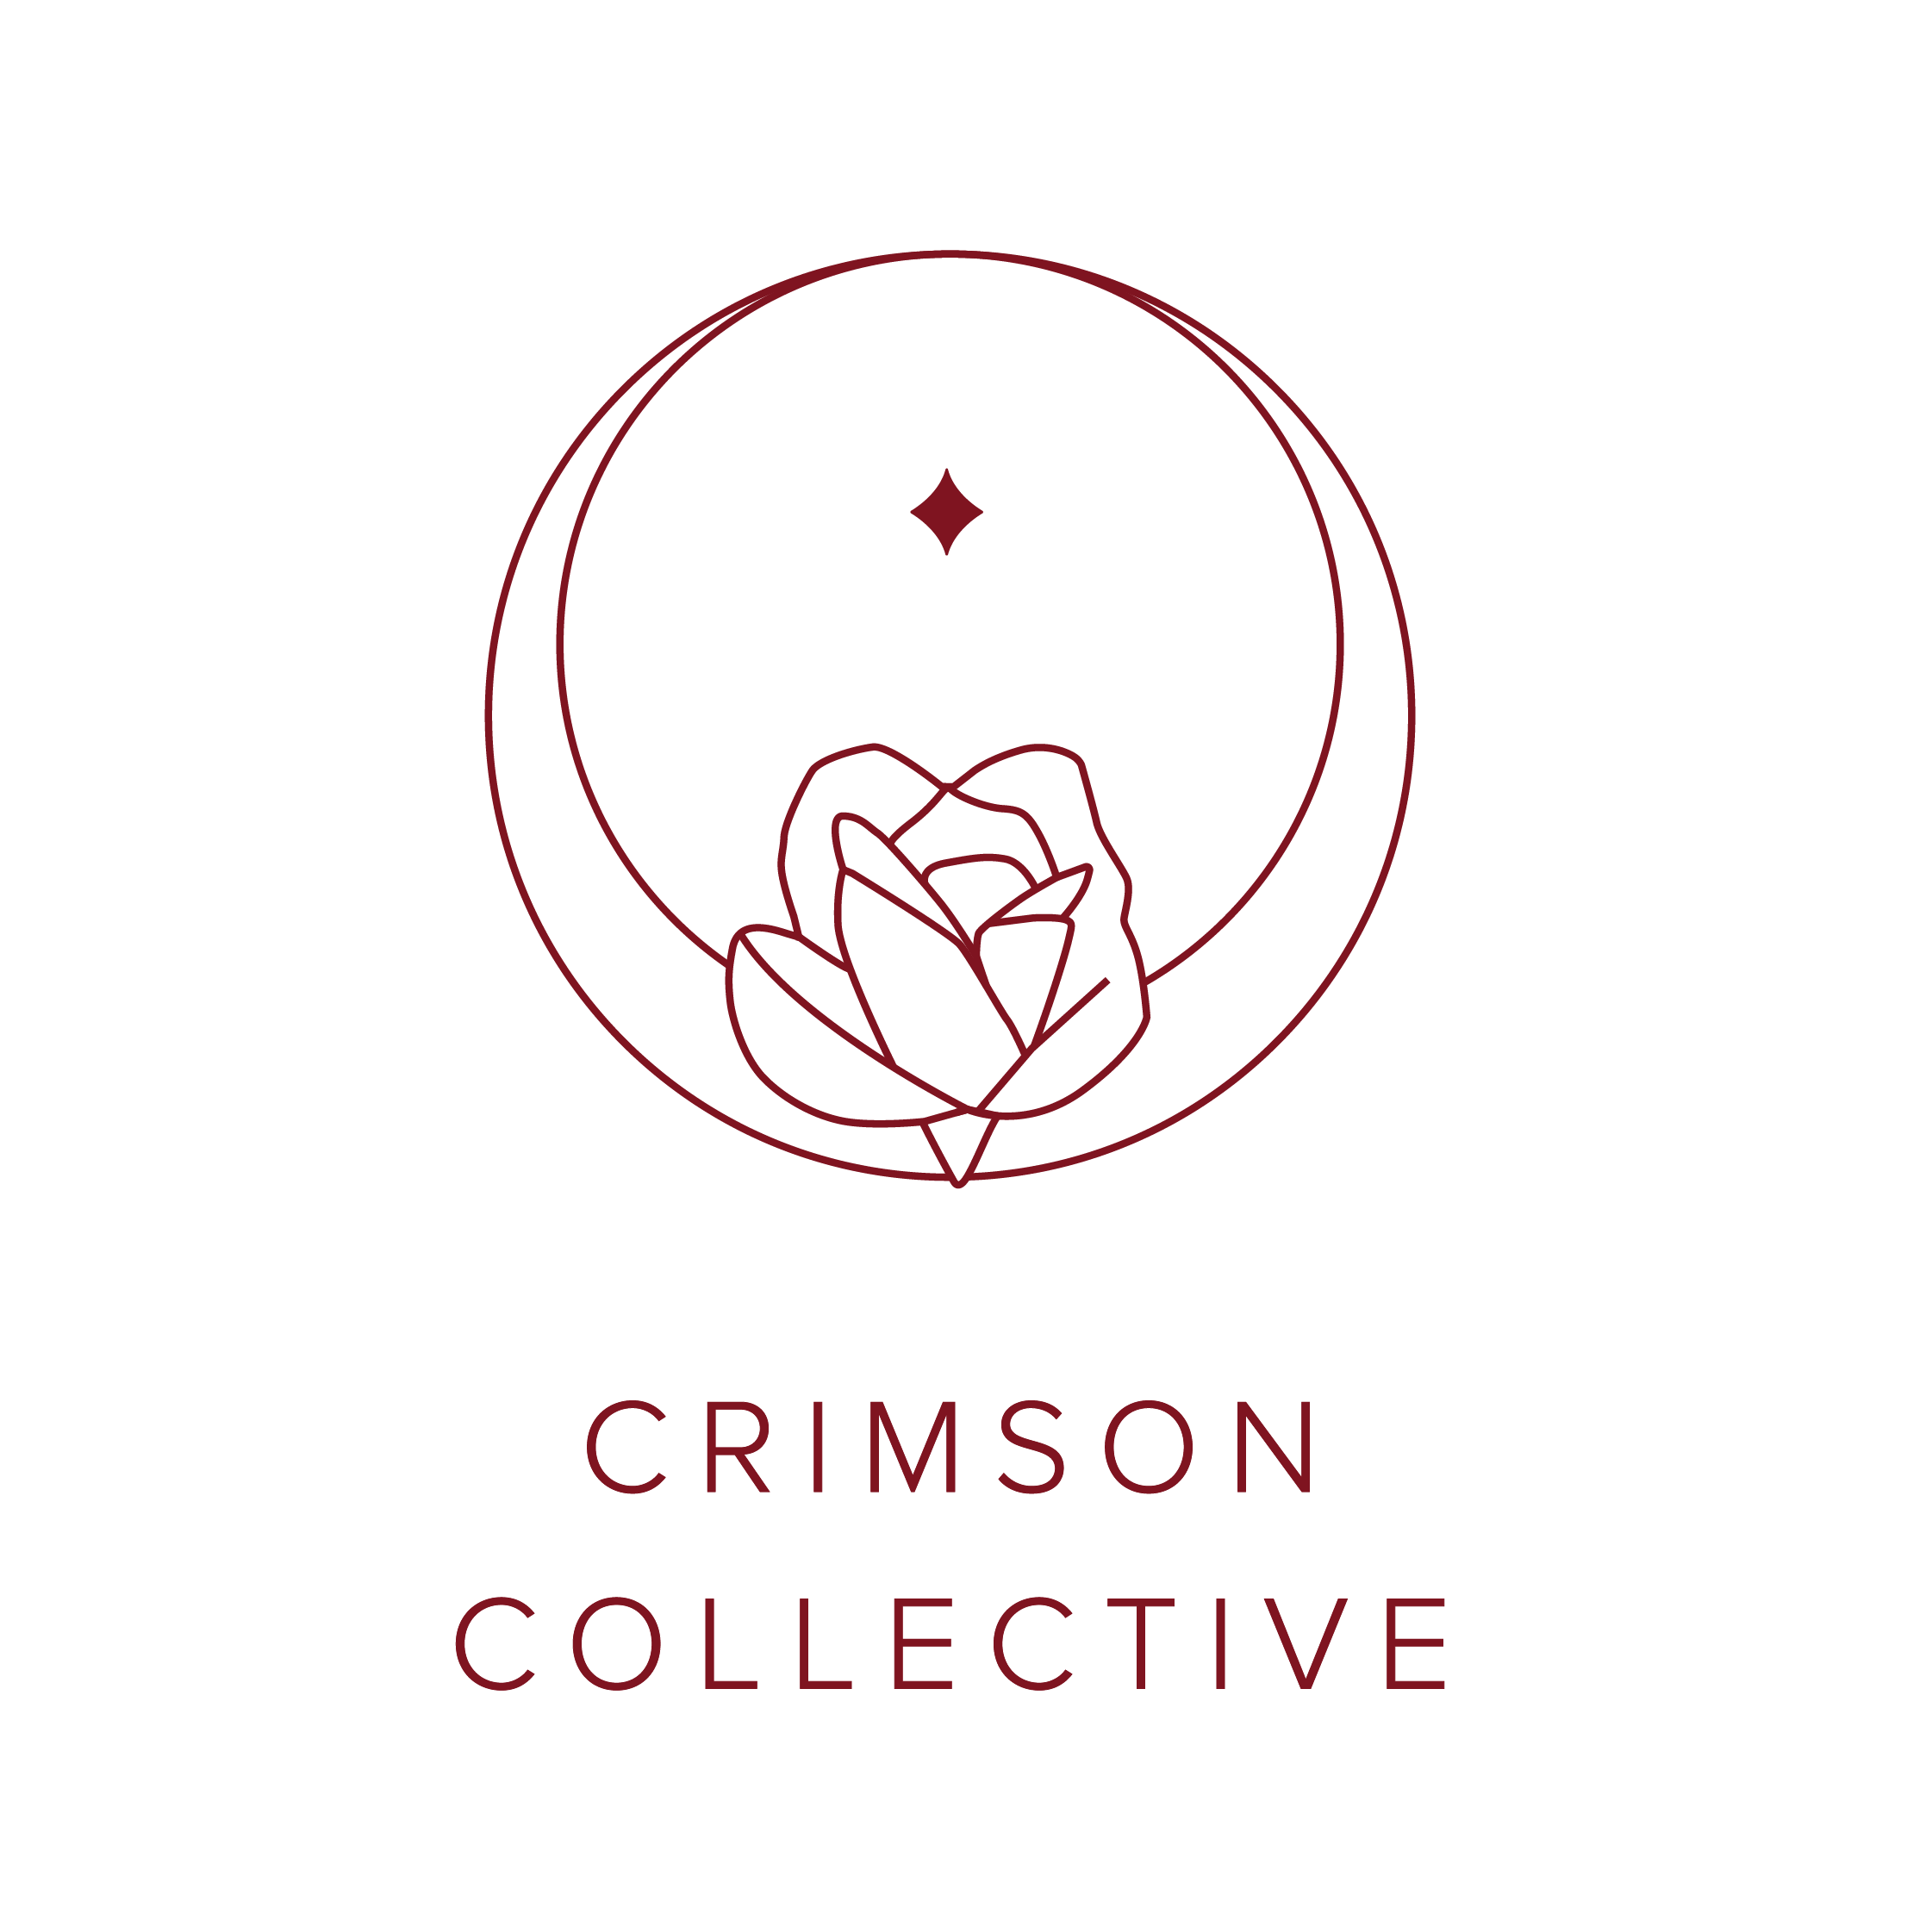 Crimson Collective